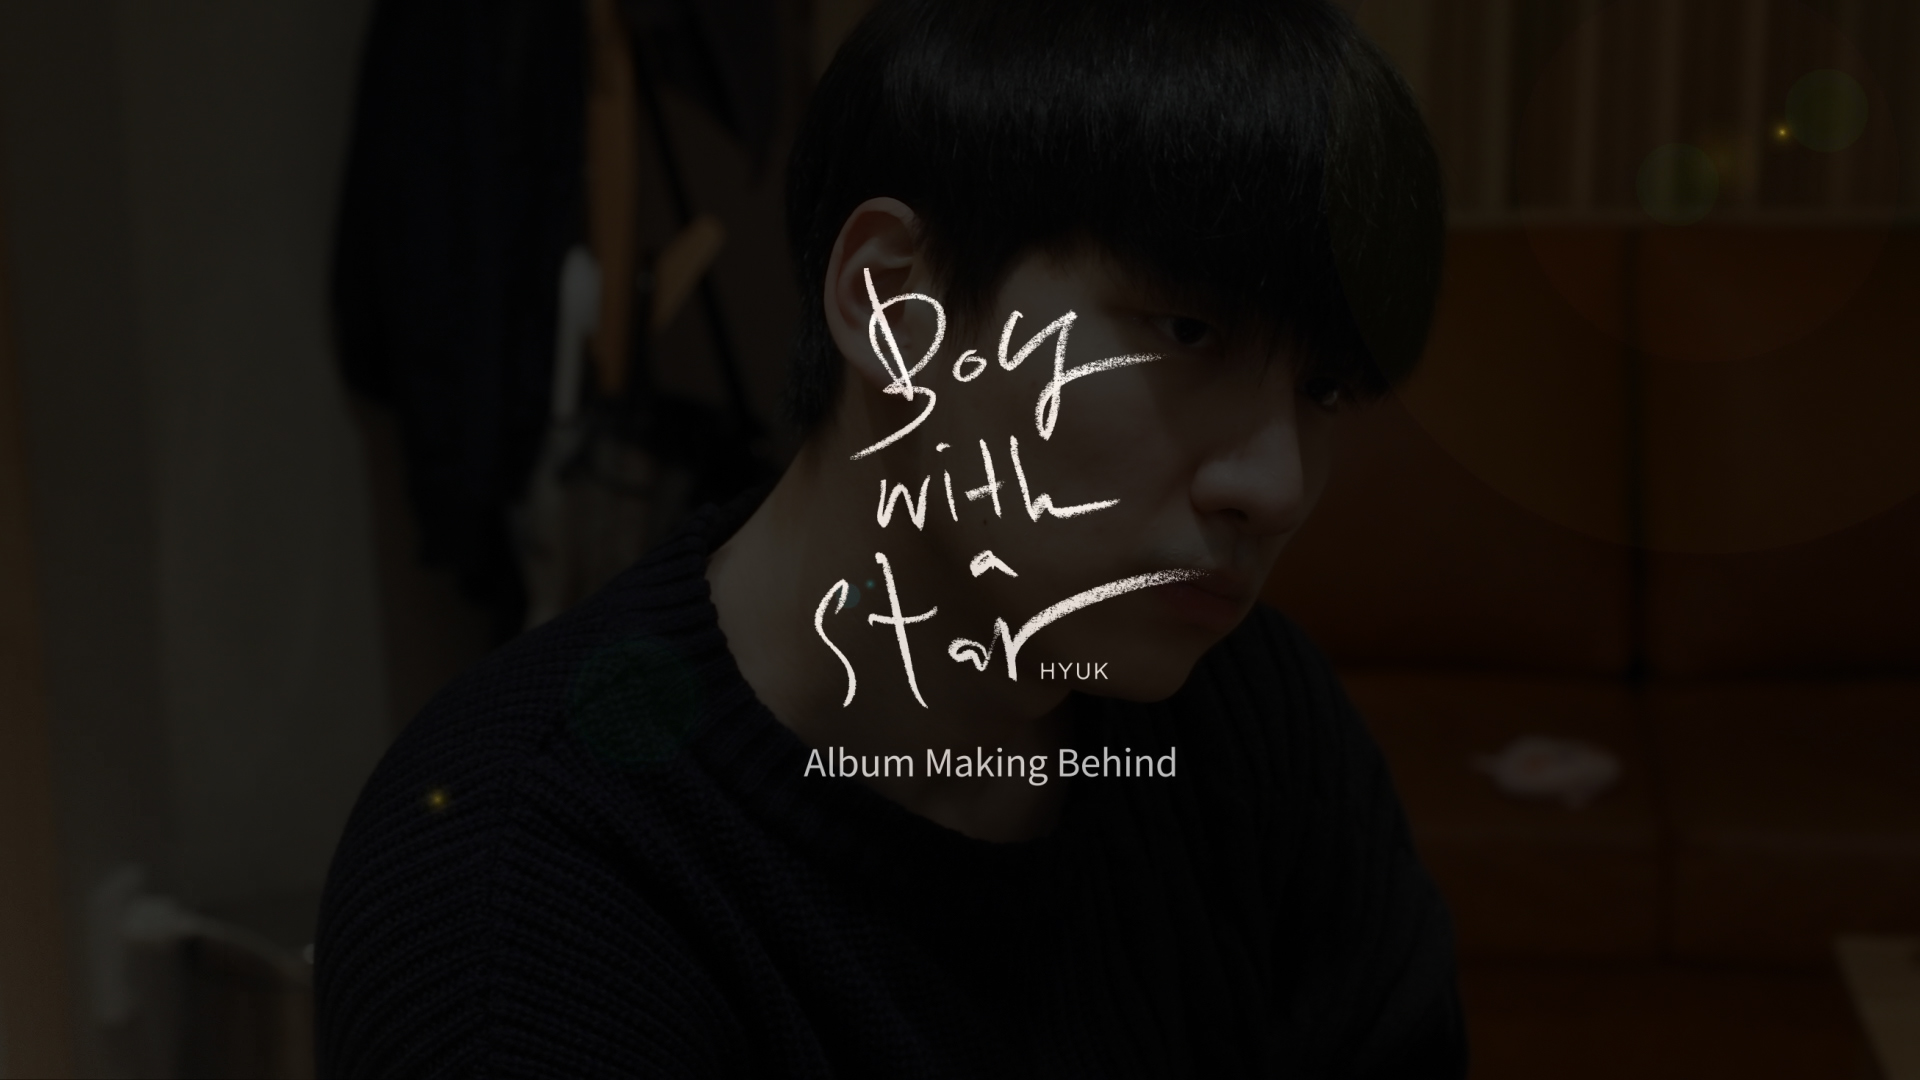 혁(HYUK) - 'Boy with a star' 작업기 (Album Making Behind)